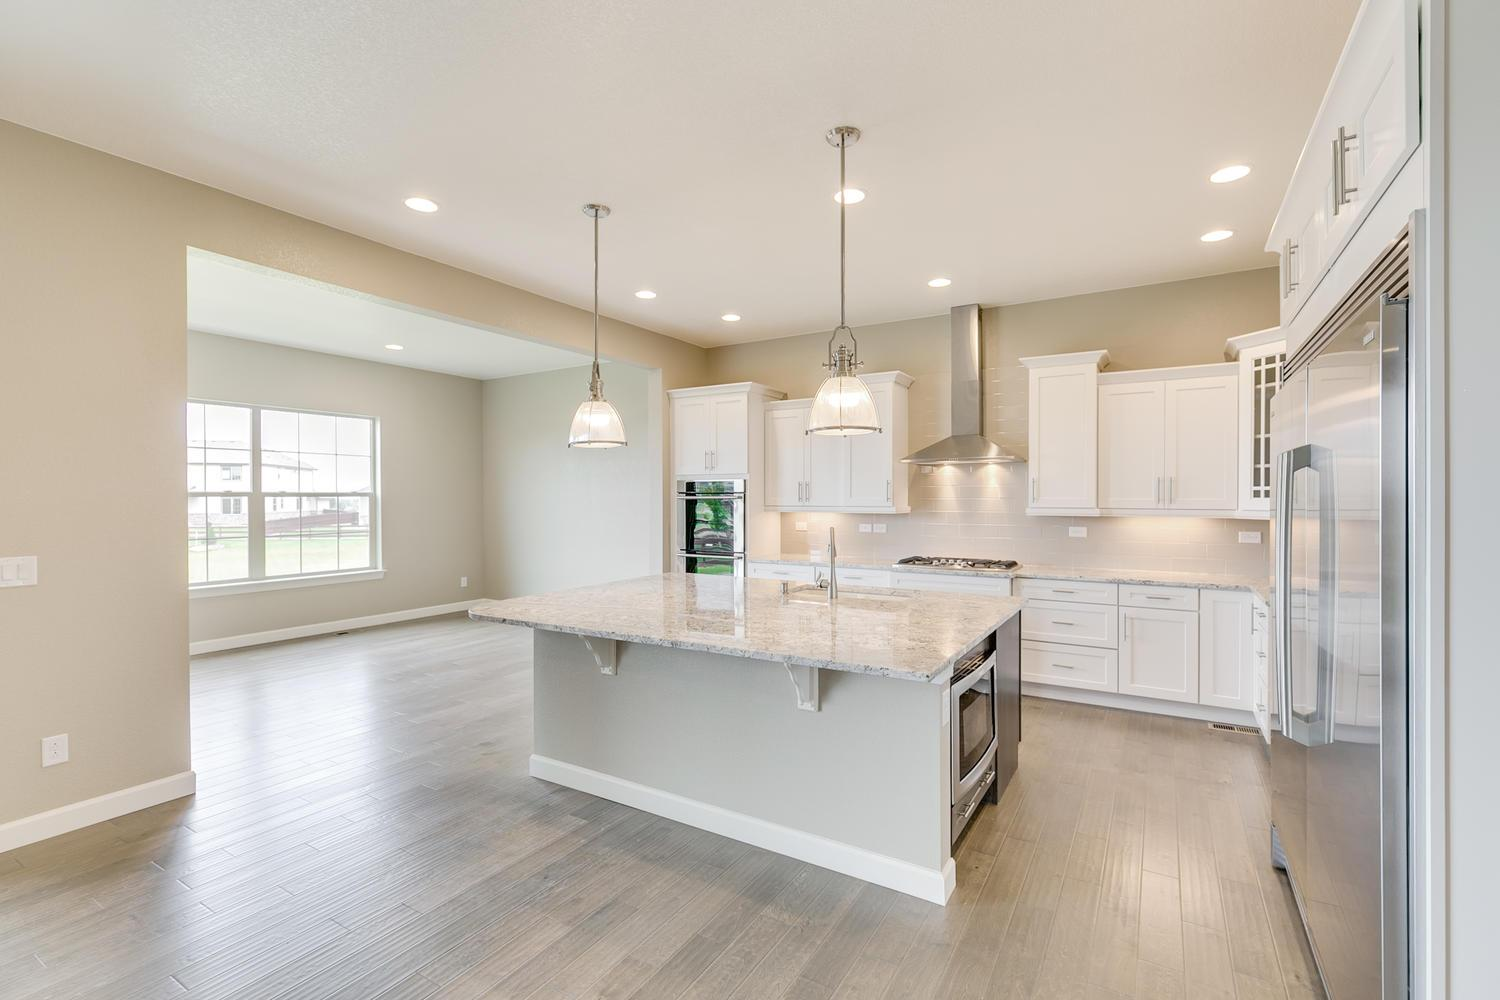 Kitchen featured in the Torreys Peak By D.R. Horton in Fort Collins-Loveland, CO